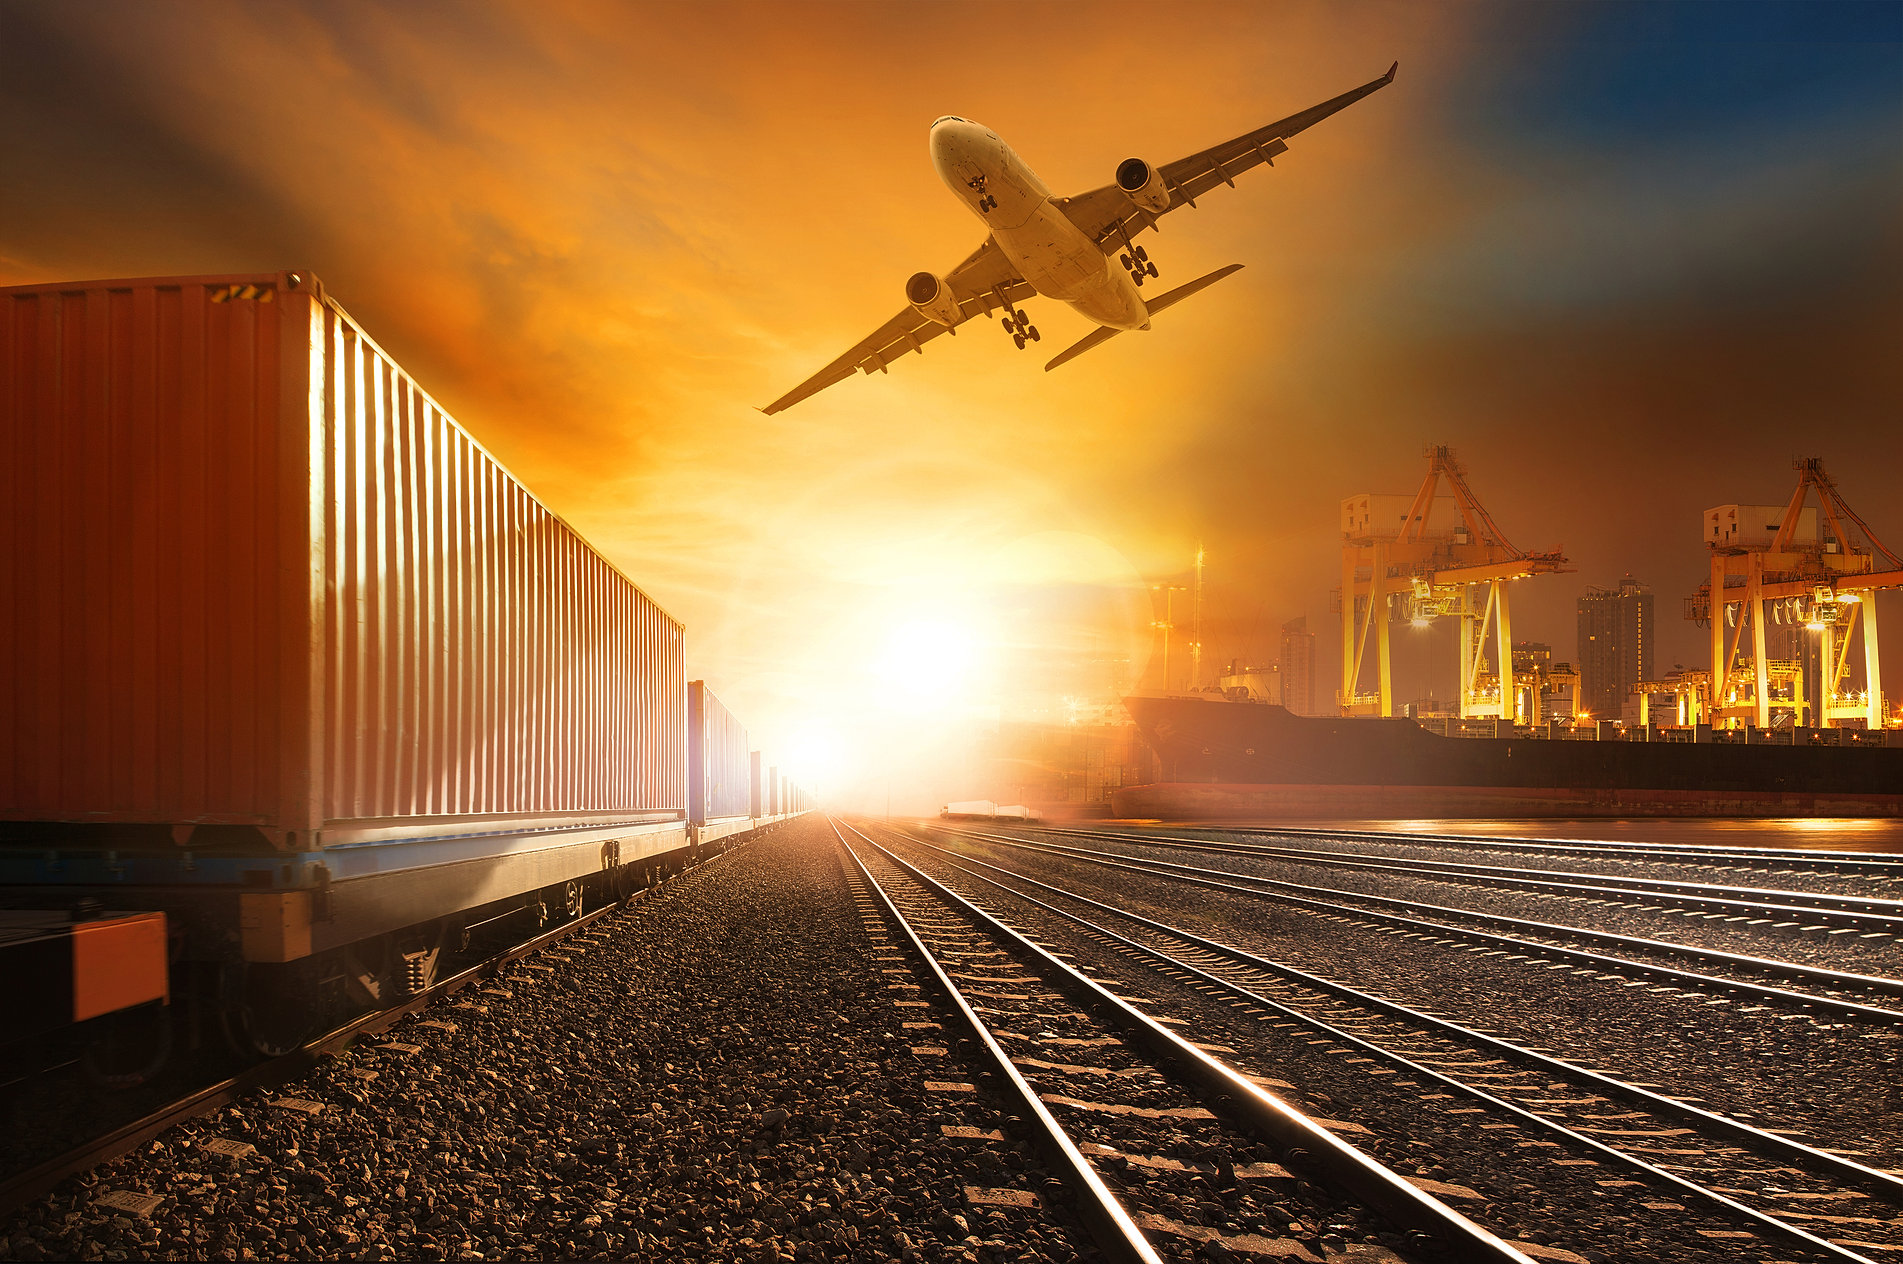 freight forwarders Freight forwarders plan and execute shipments by all modes of transport they are responsible for researching routes, rates, and carriers, providing quotes to customers, making arrangements for shipments, monitoring shipments, and managing transportation documentation.